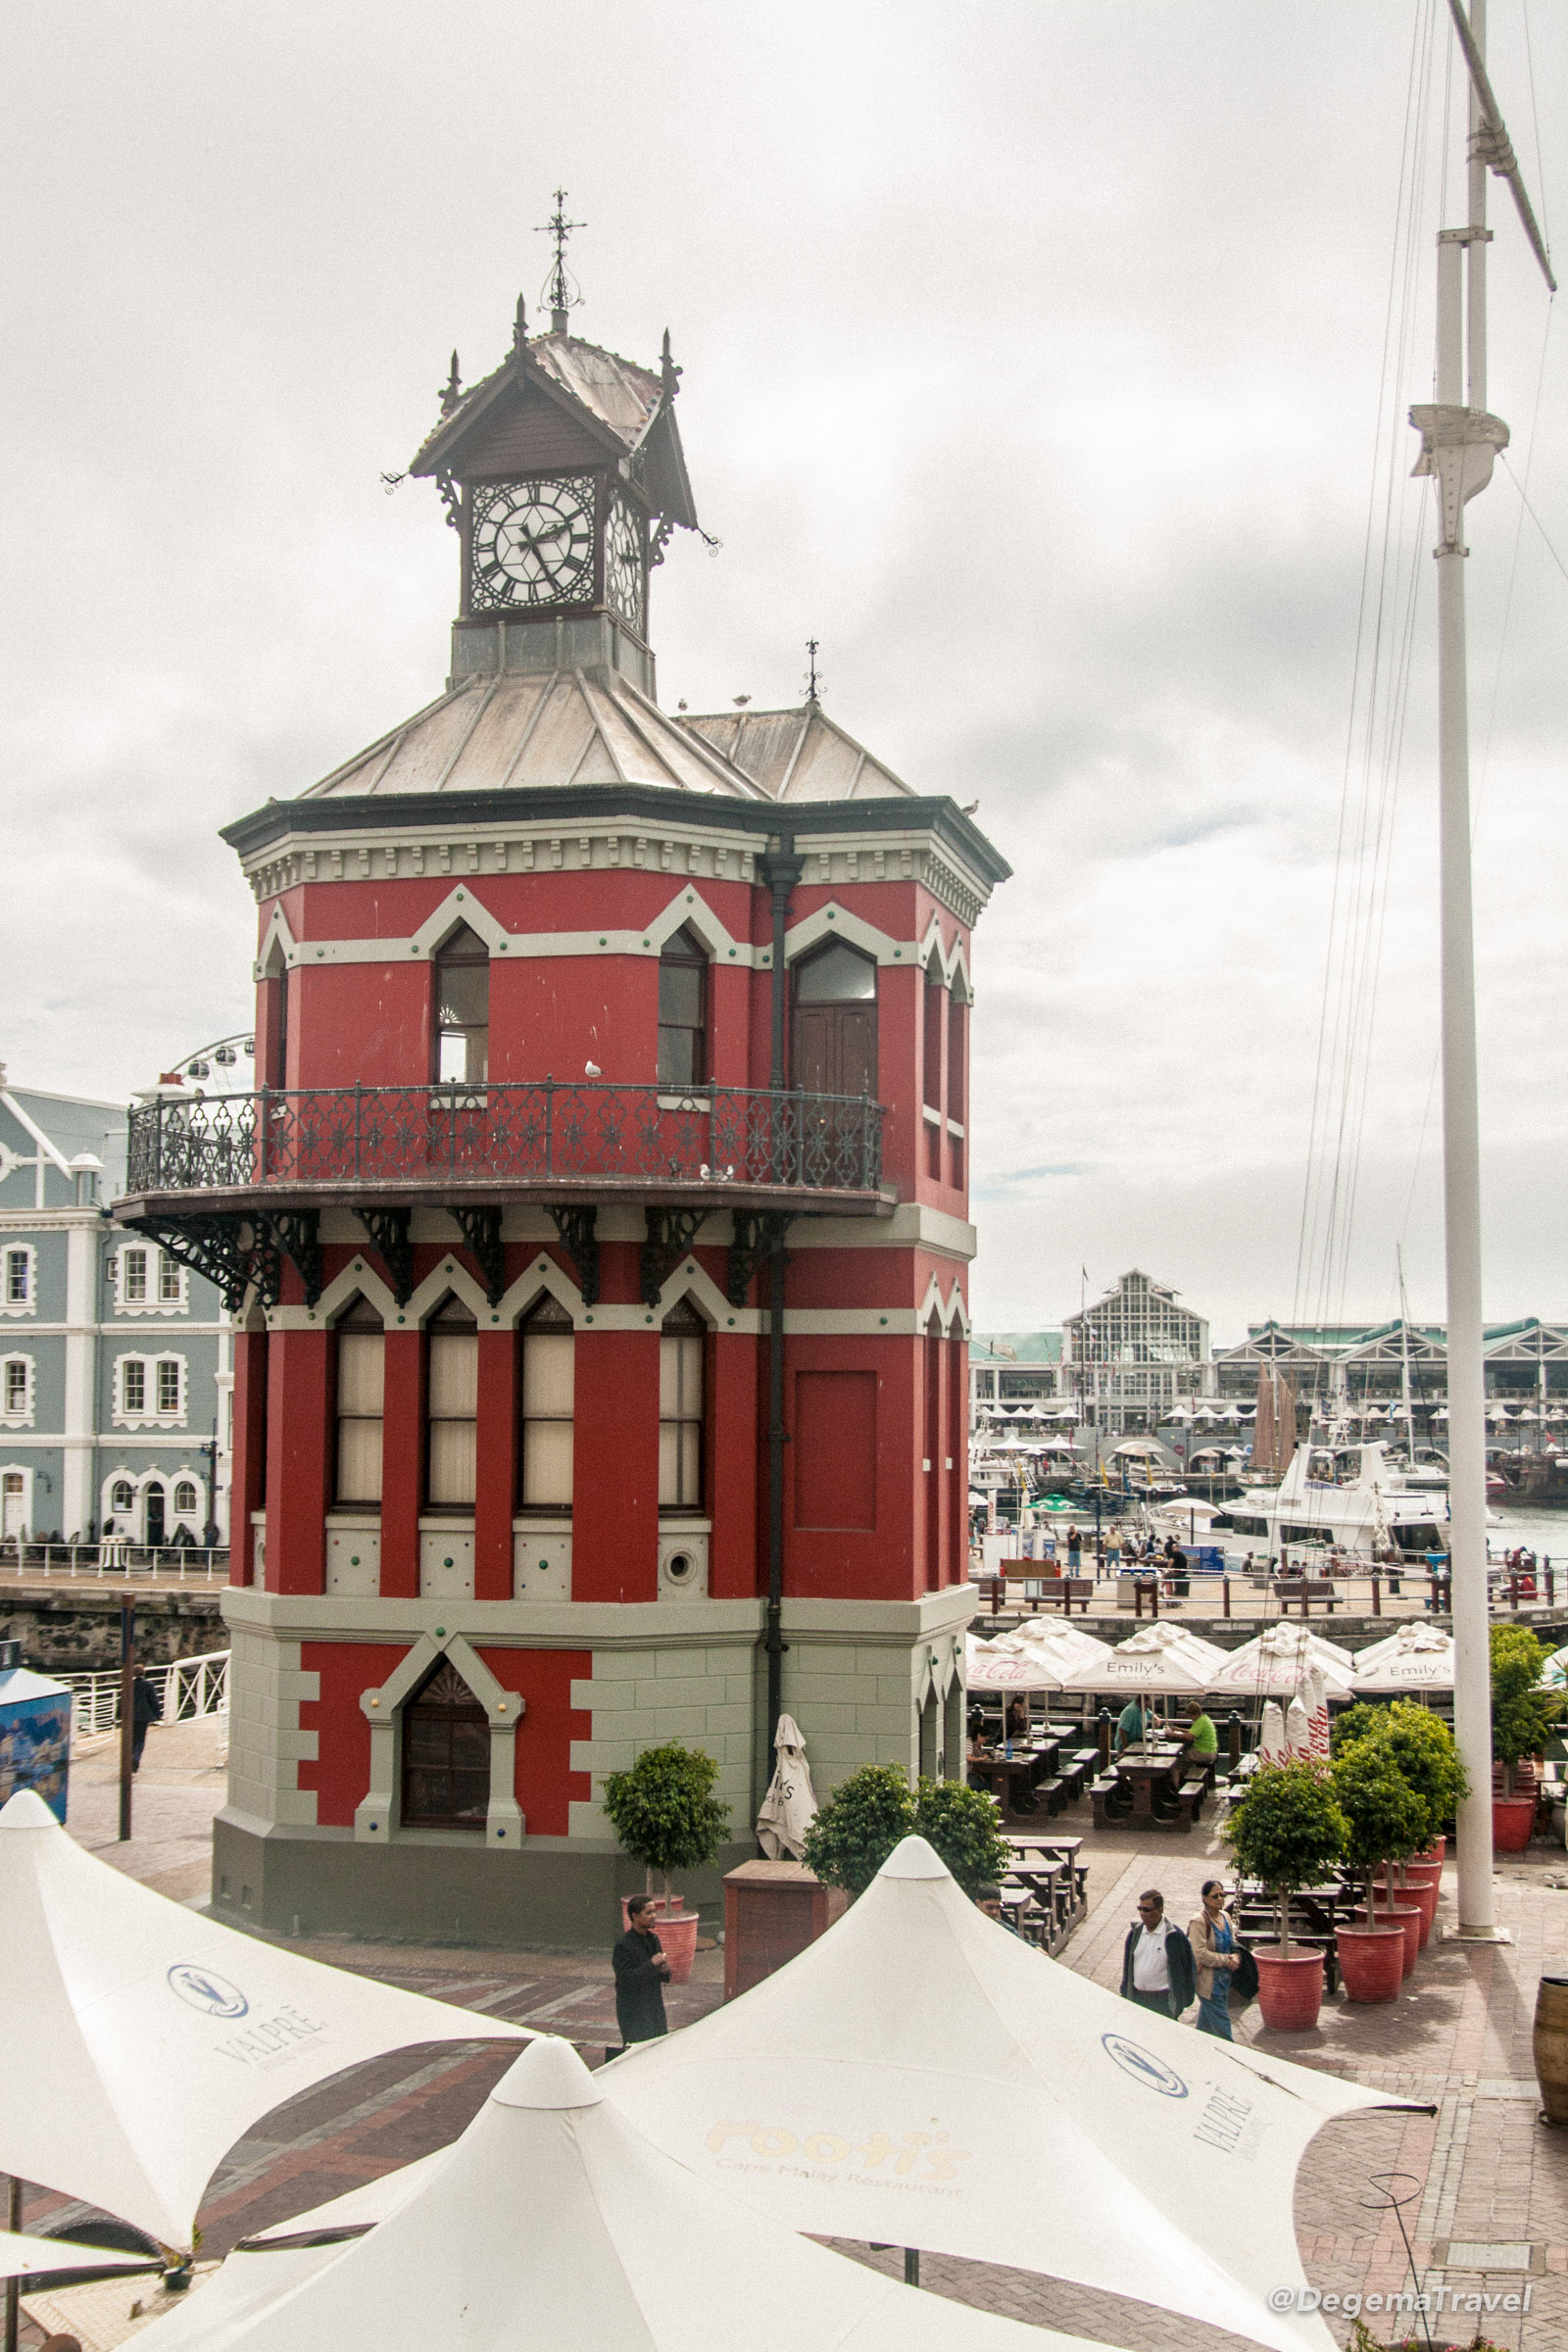 Victoria & Alfred Waterfront in Cape Town, South Africa